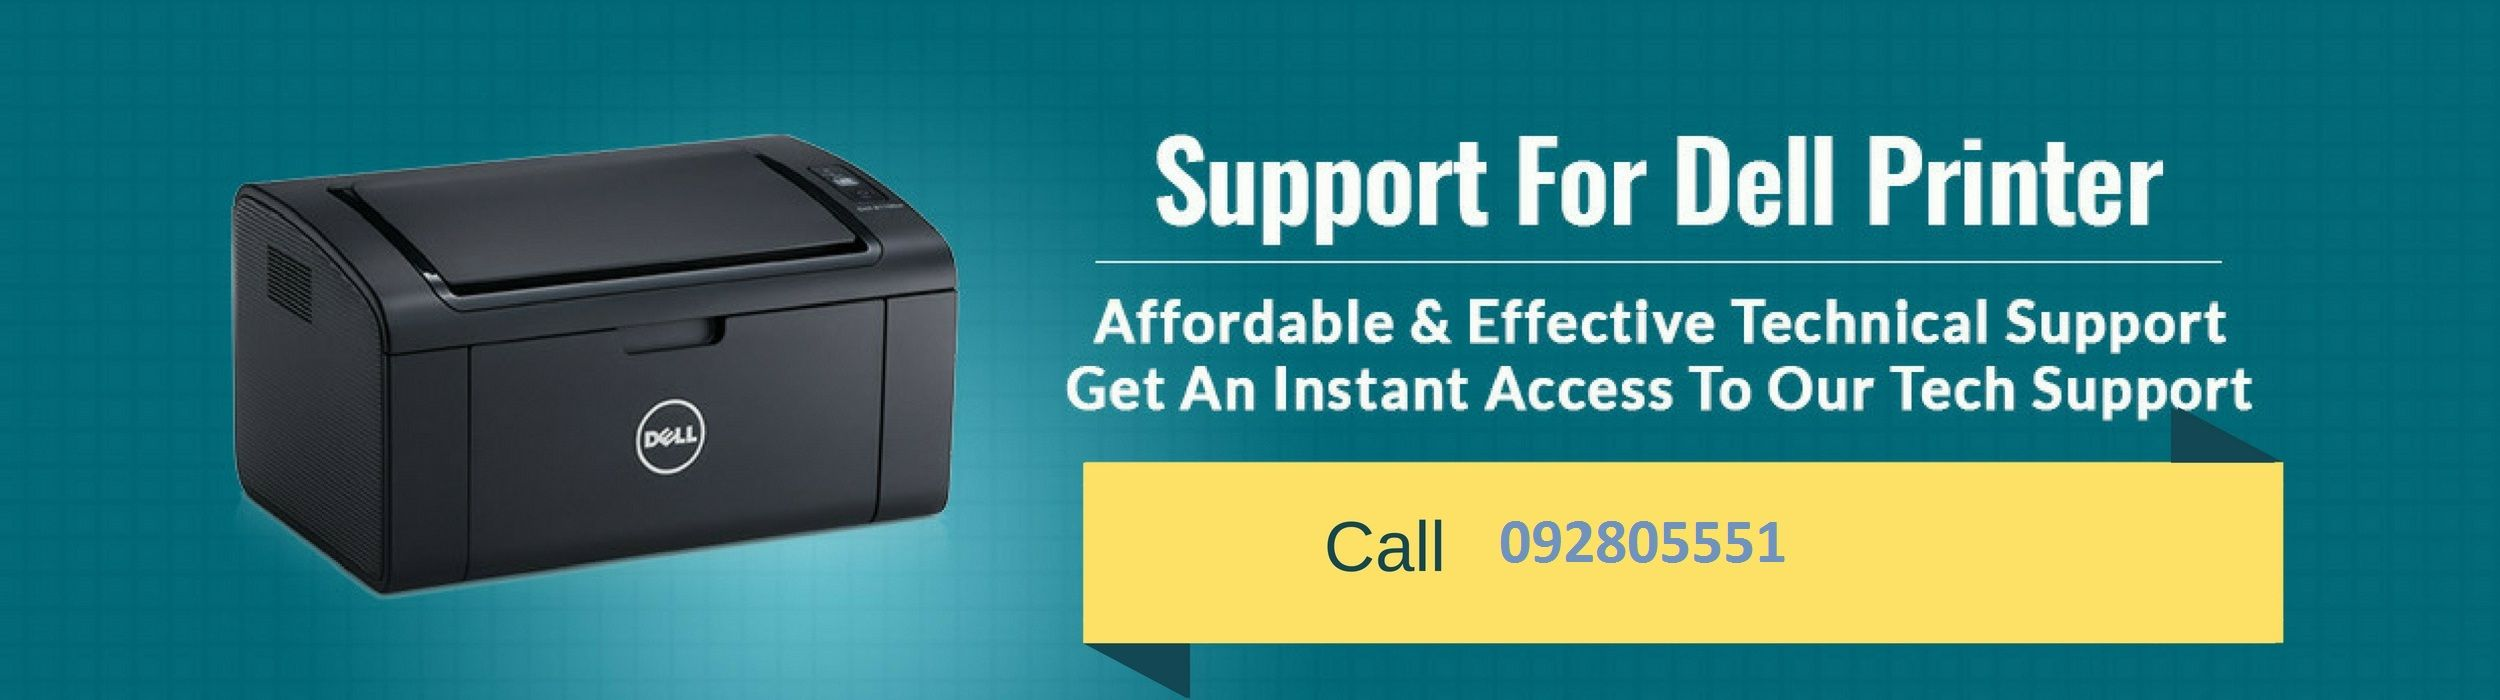 Call at Dell Printer Support Number 092805551 Printer